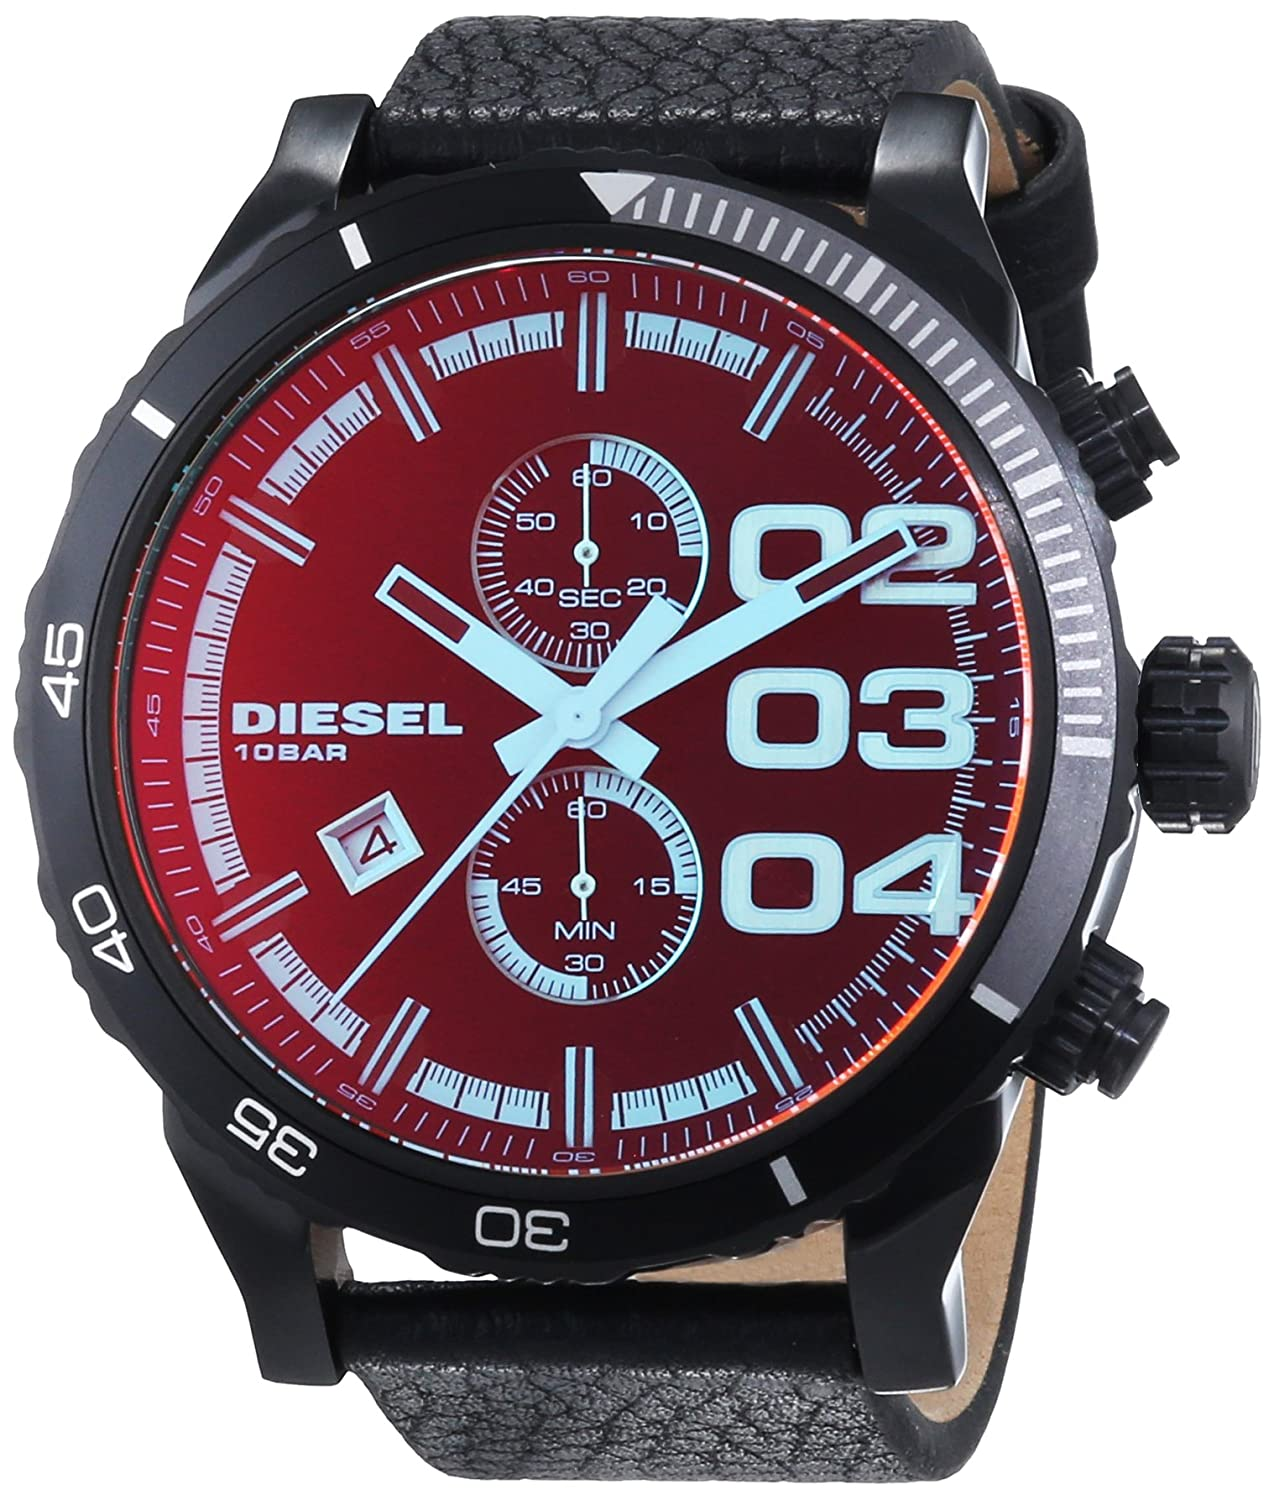 Amazon.com: Diesel Mens DZ4311 Double Down Series Analog Display Quartz Black Watch: Diesel: Watches